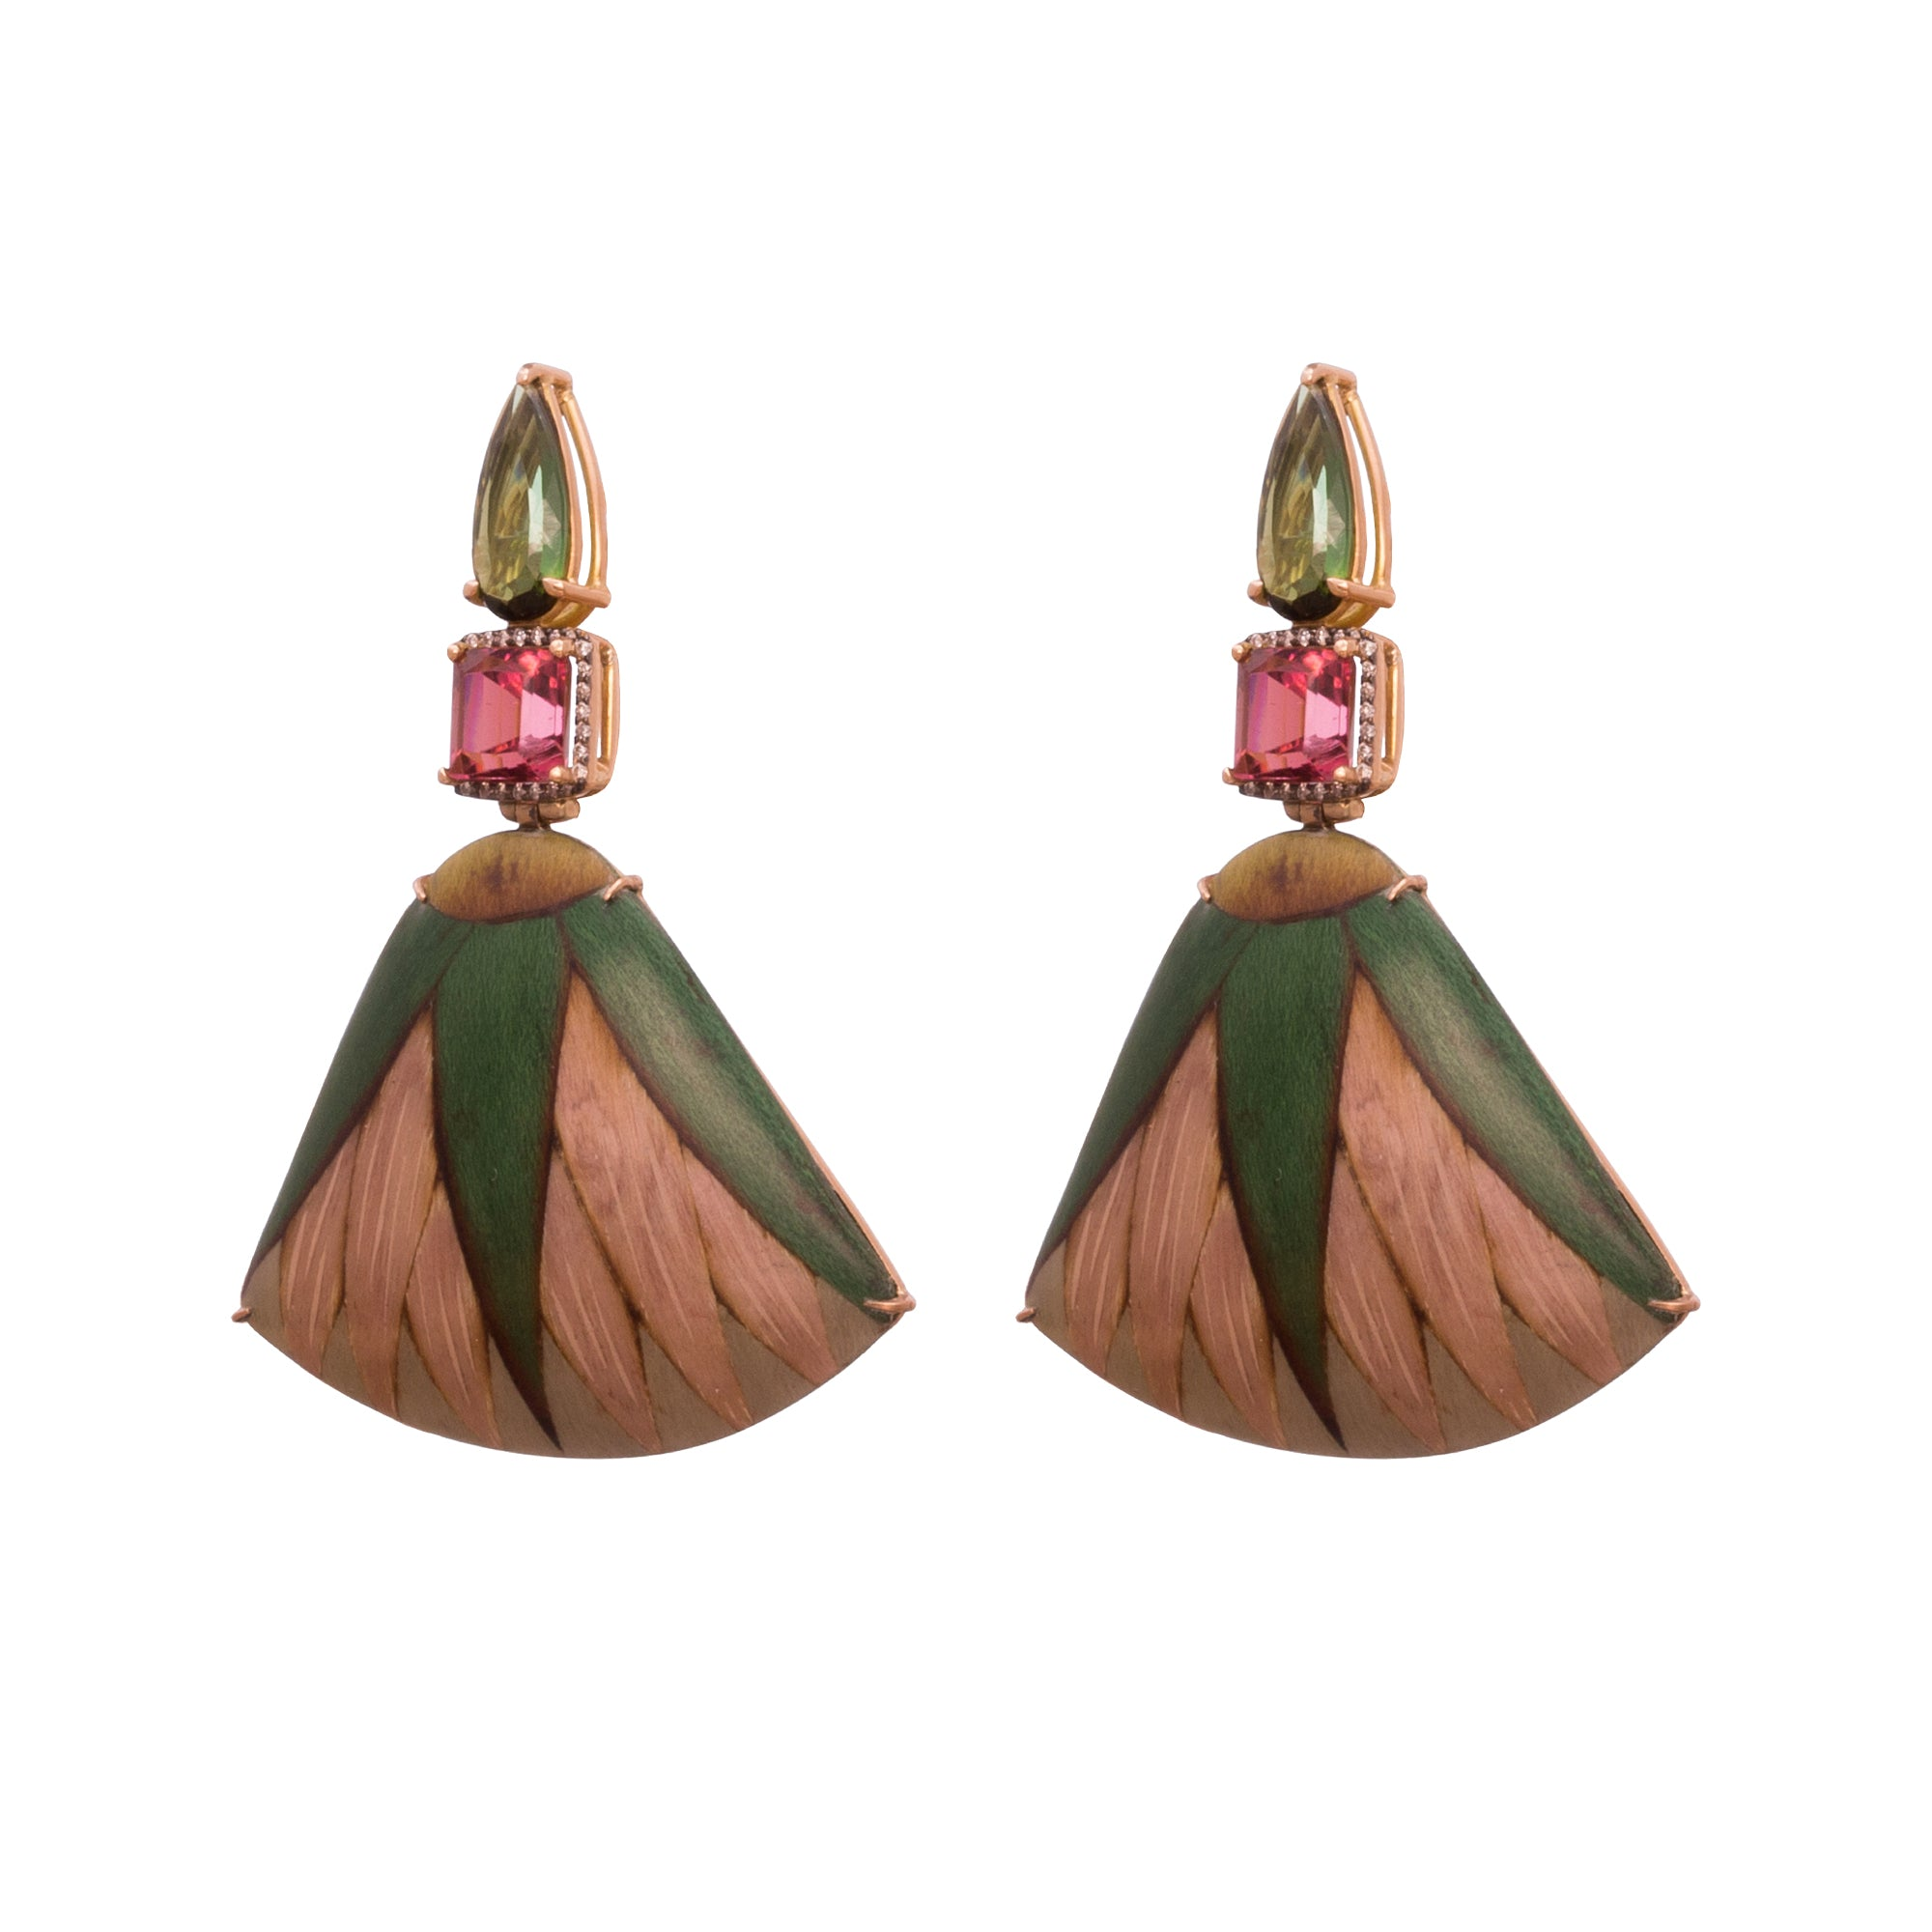 Tourmaline Wood Gold Marquetry Green and Pink Fan Earrings By Silvia Furmanovich For Broken English Jewlery